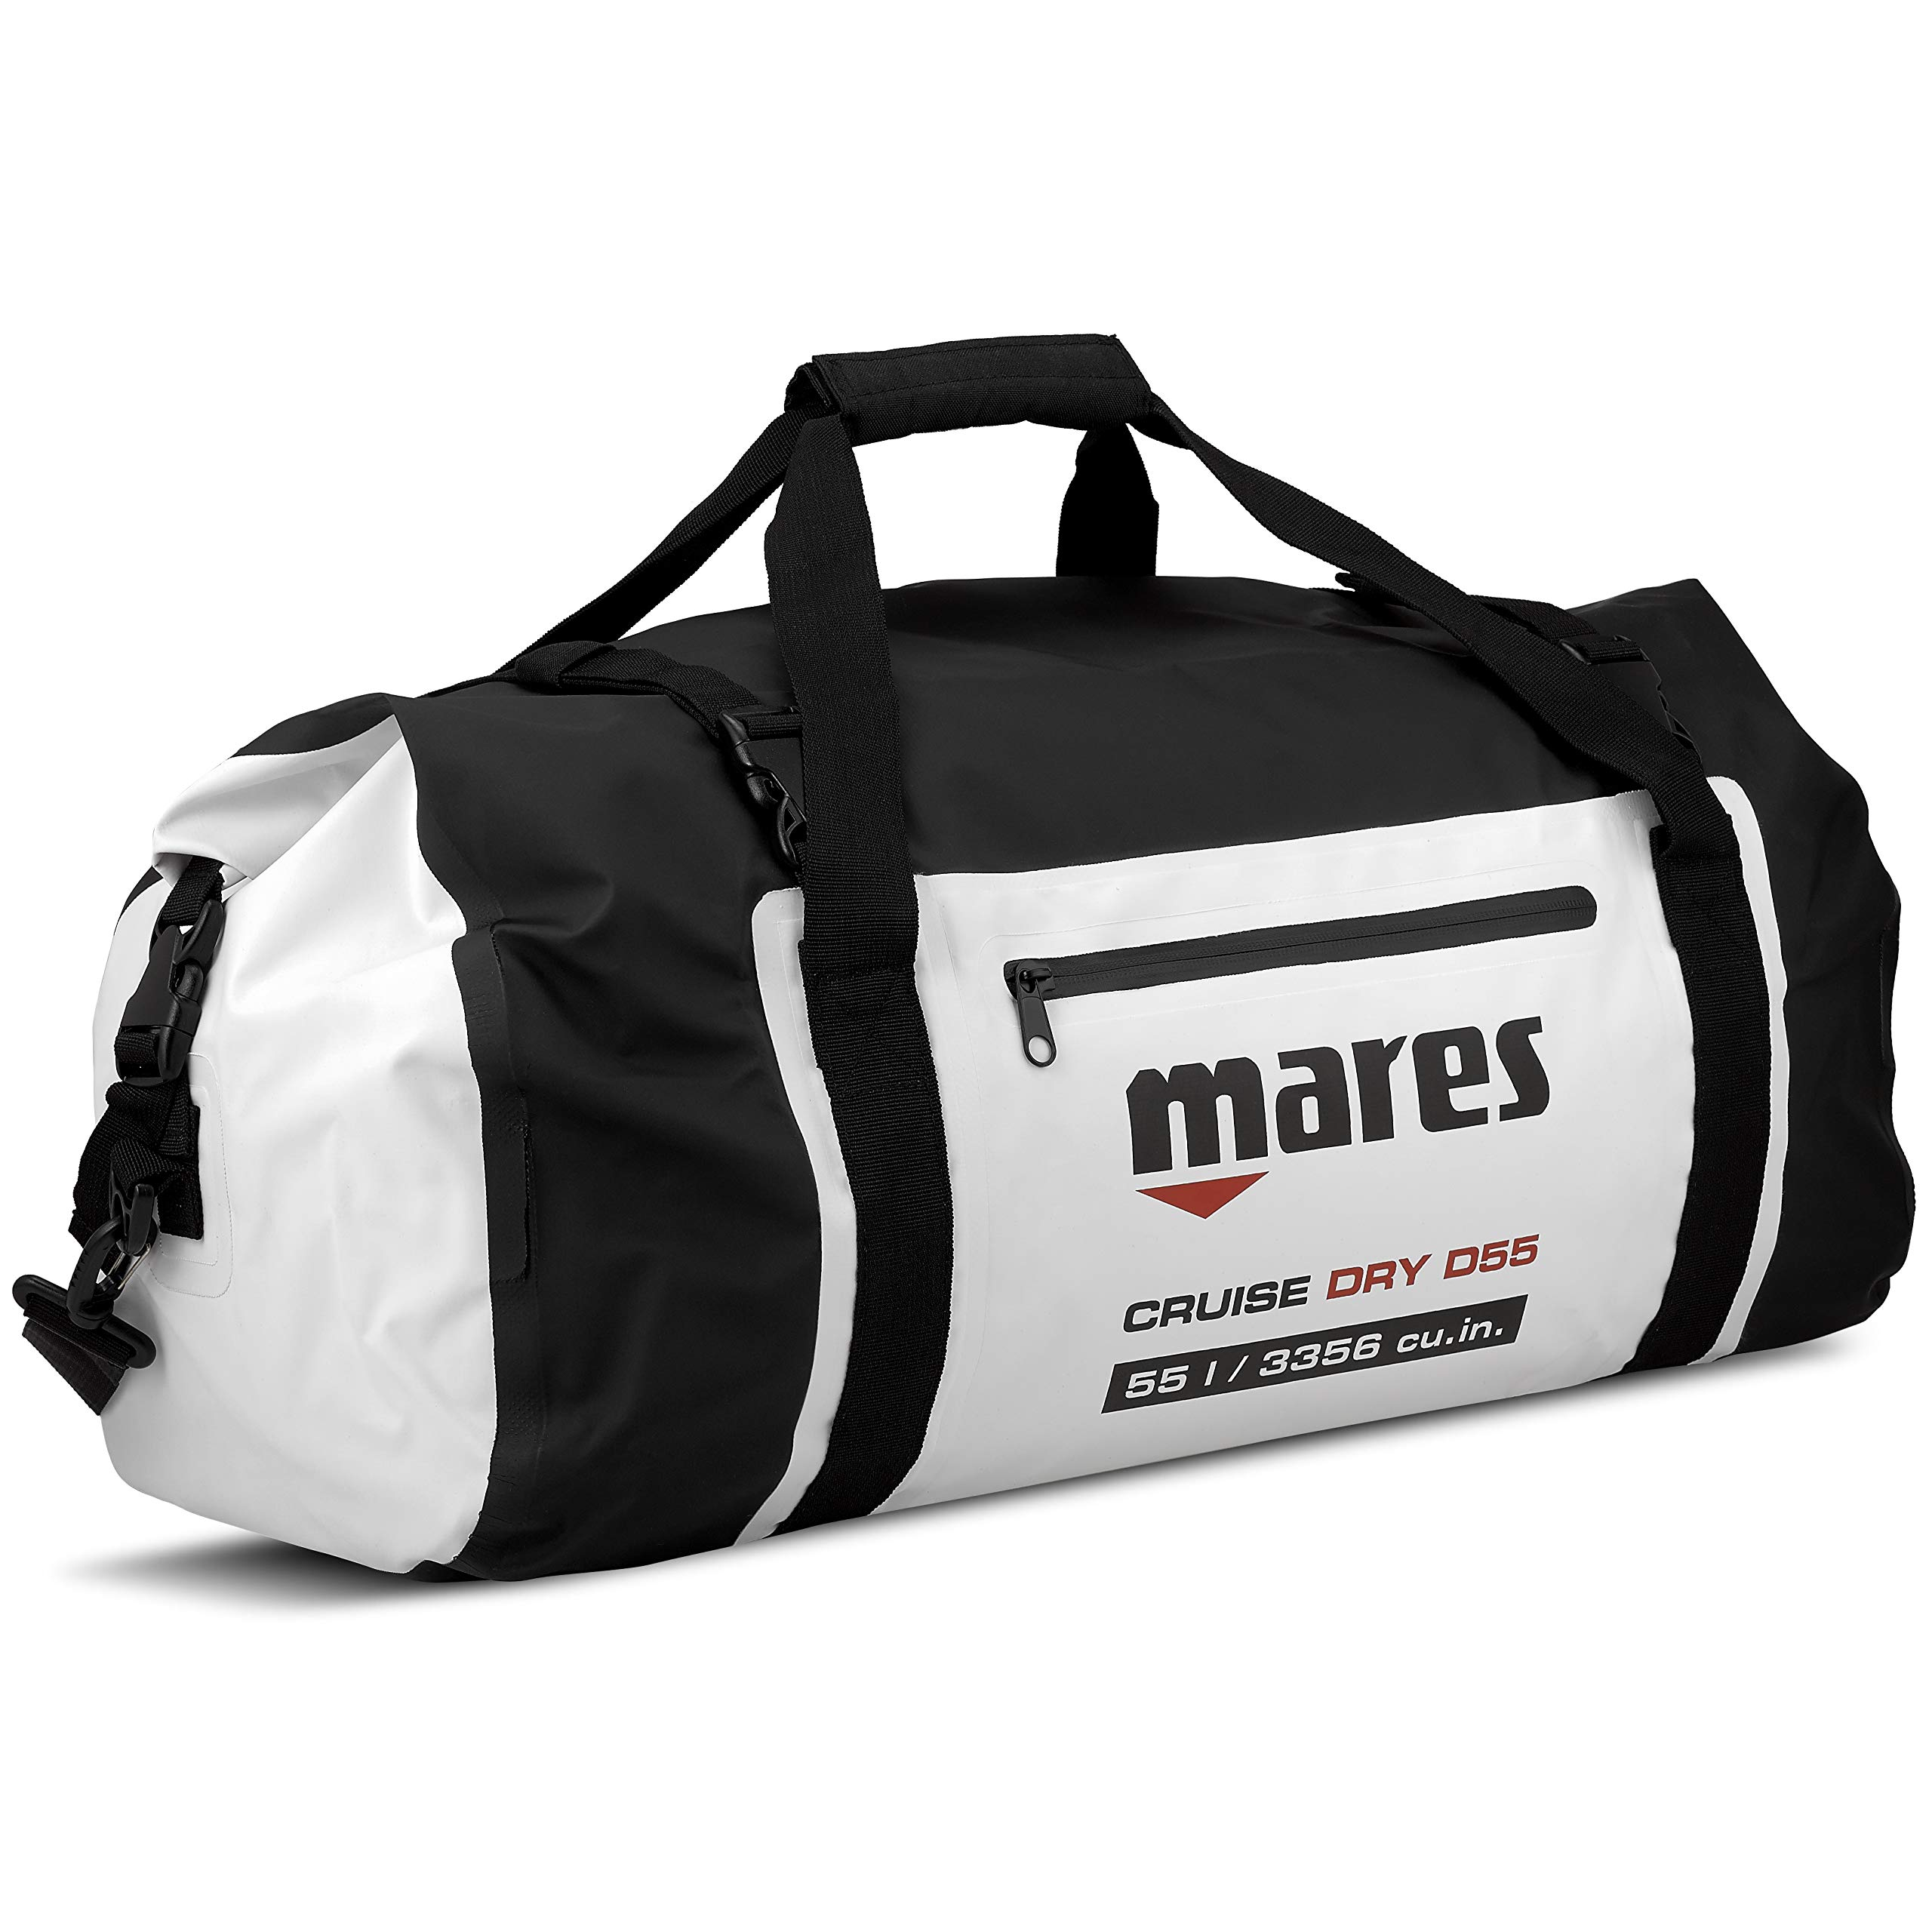 Mares 415450-BKWH MBP15 Cruise Roll-Top Closure Dry Bag, Black/White, 15 L